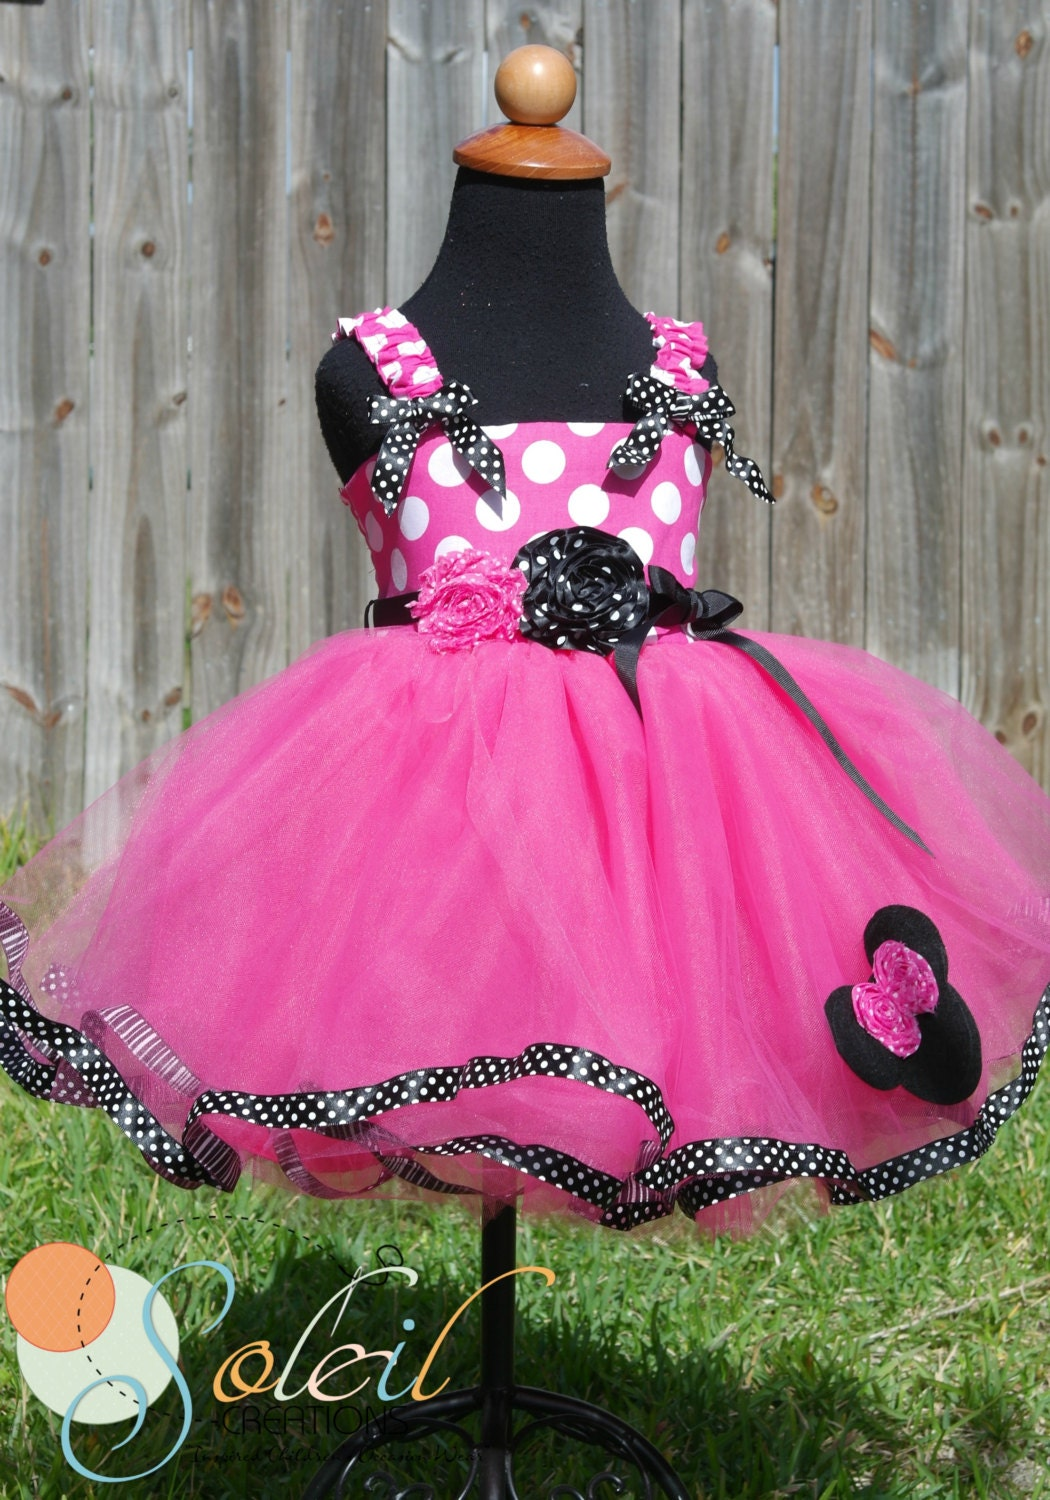 Hot Pink Minnie Mouse Tutu Dress In Black and White by SCbydesign